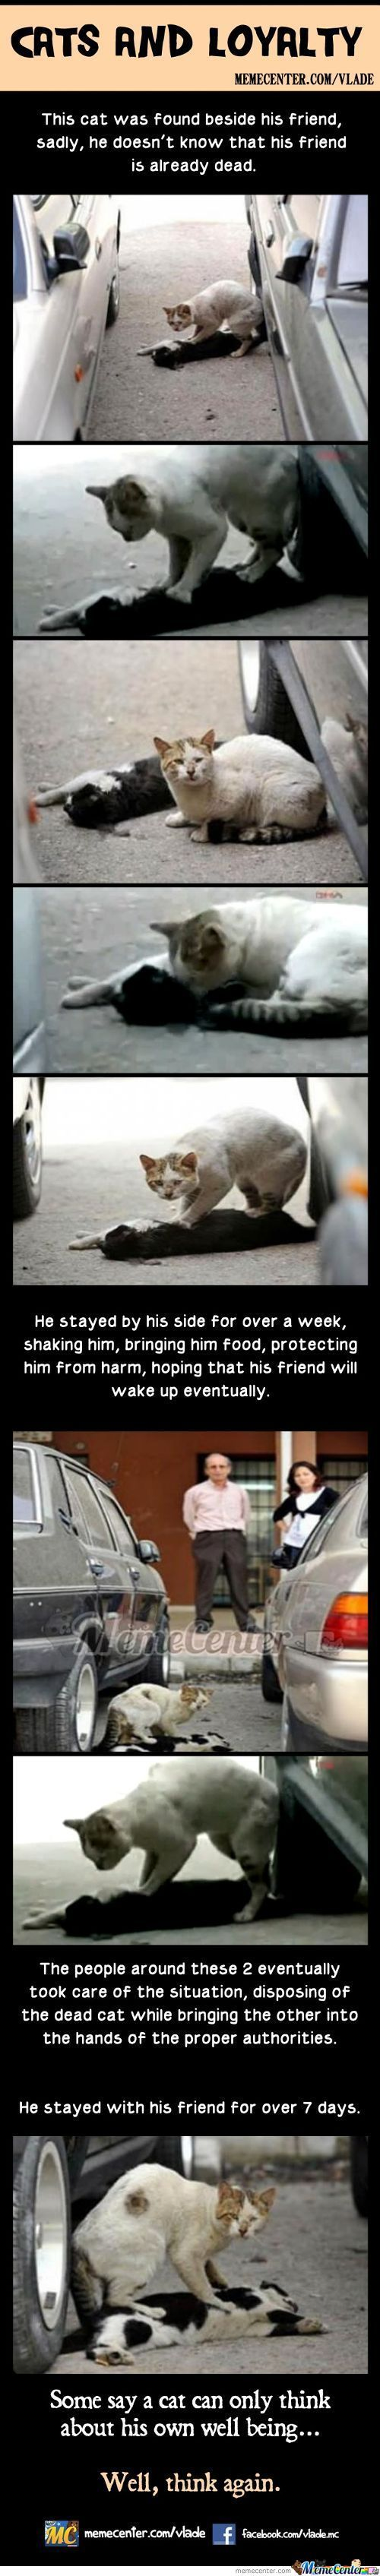 Cats And Loyalty